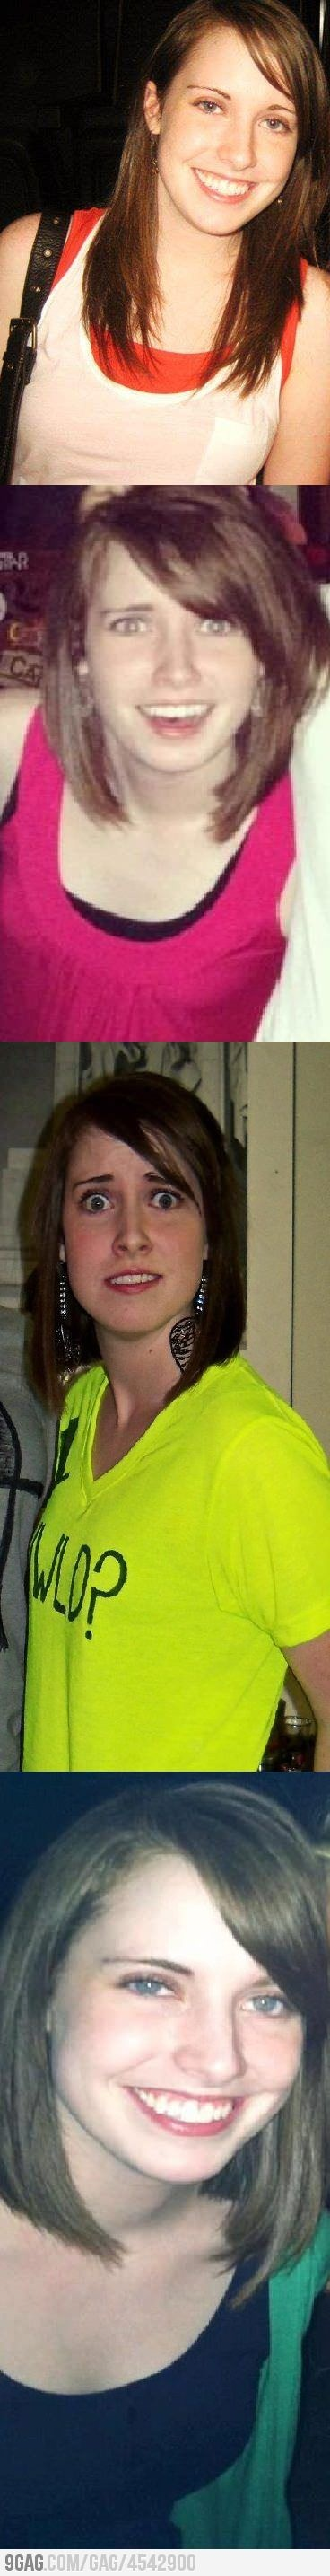 Laina Walker a.k.a overly attached girlfriend | Overly ...